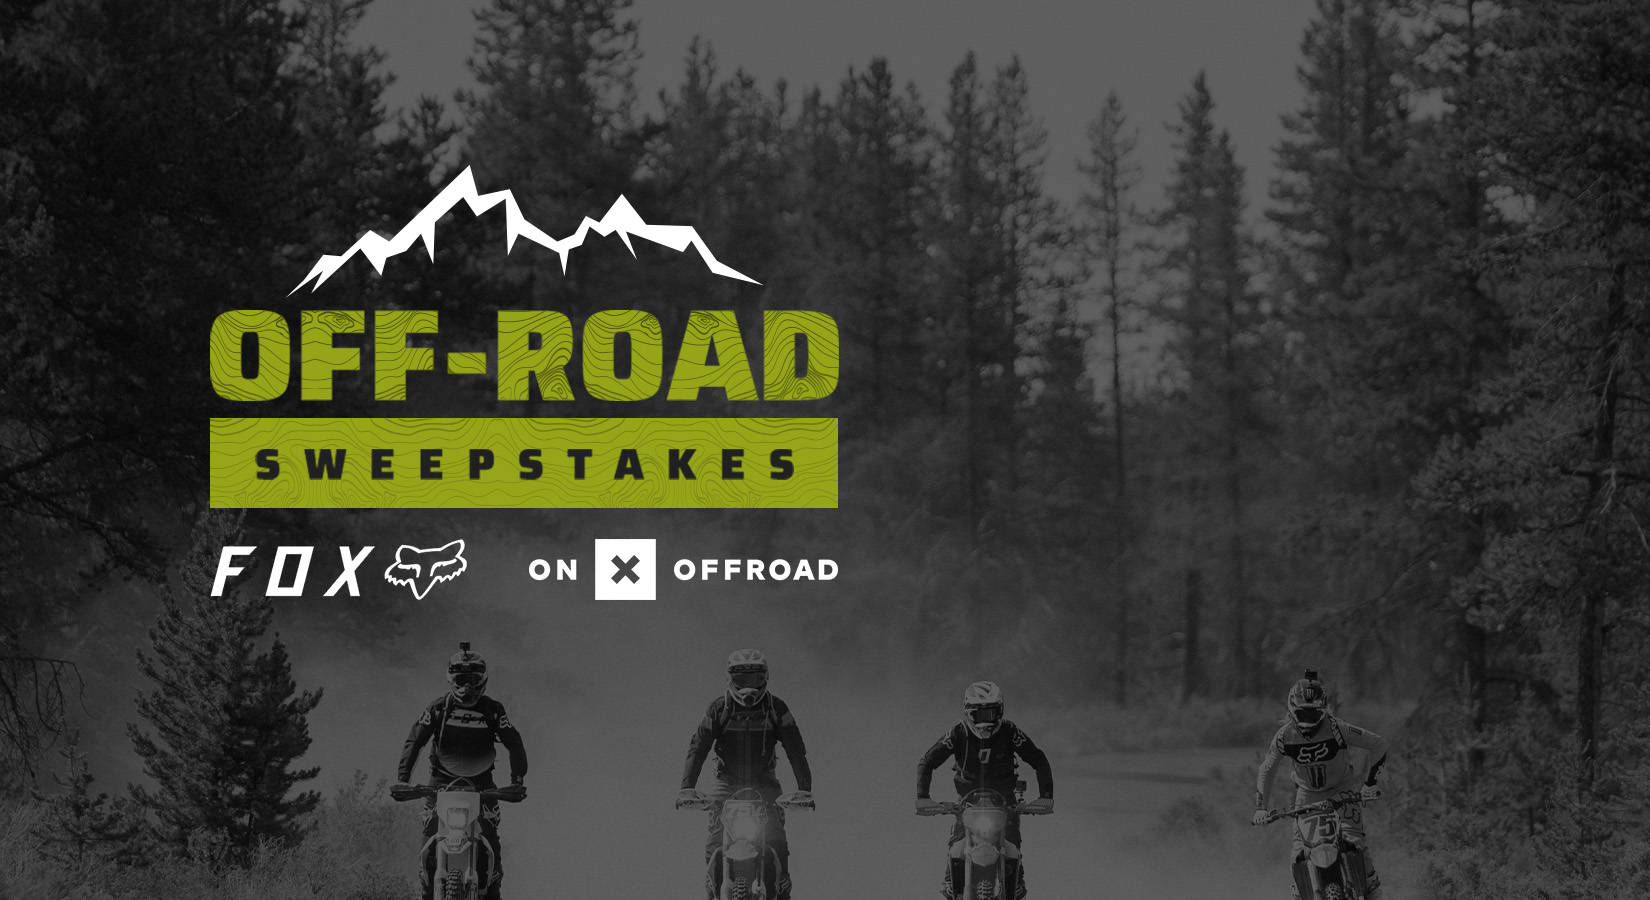 OFF-ROAD SWEEPSTAKES